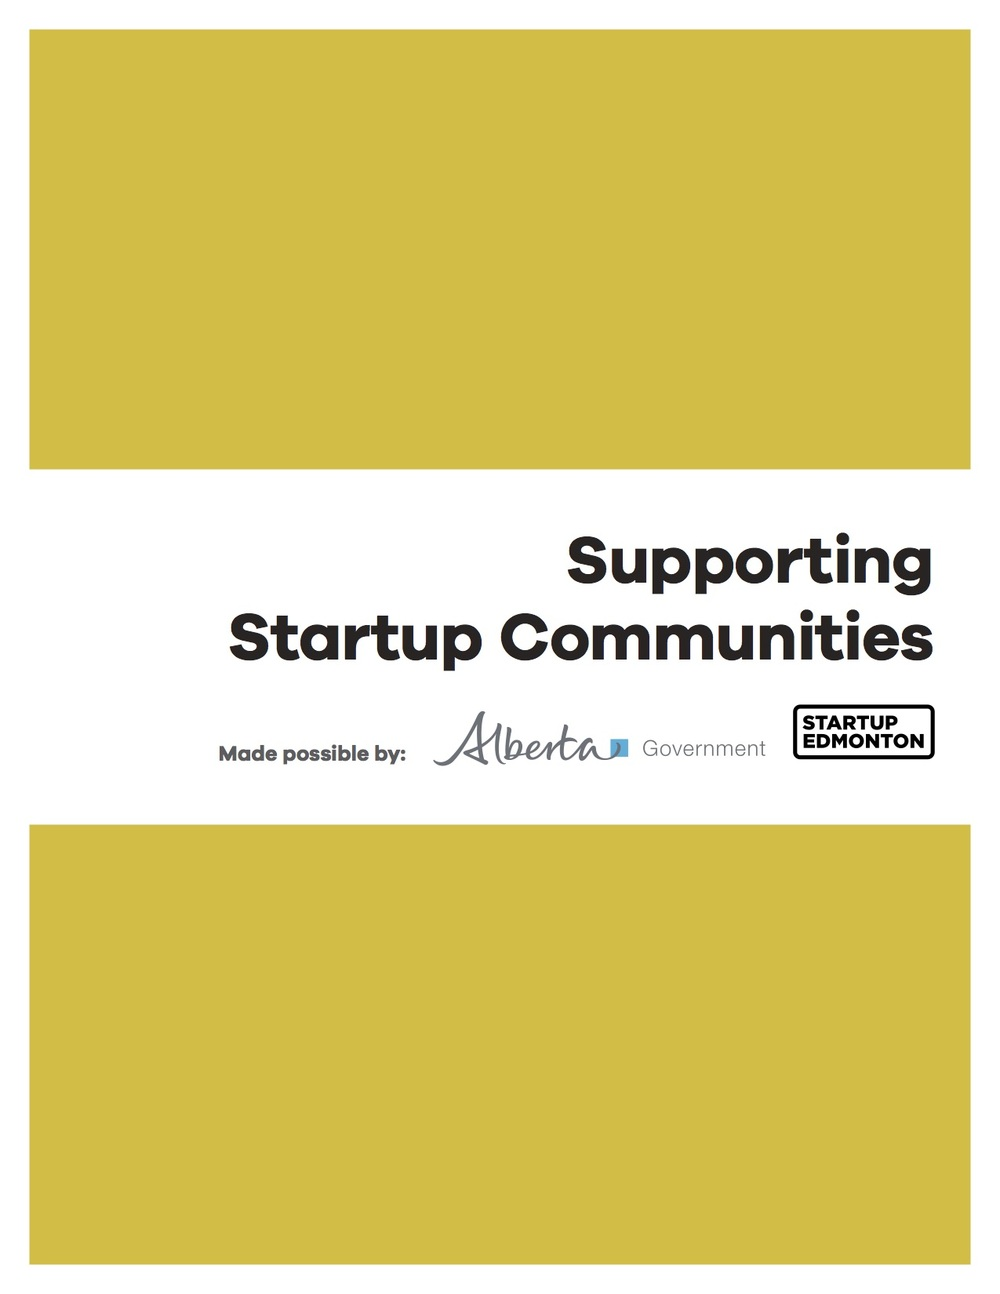 Click to download: Supporting Startup Communities Framework.